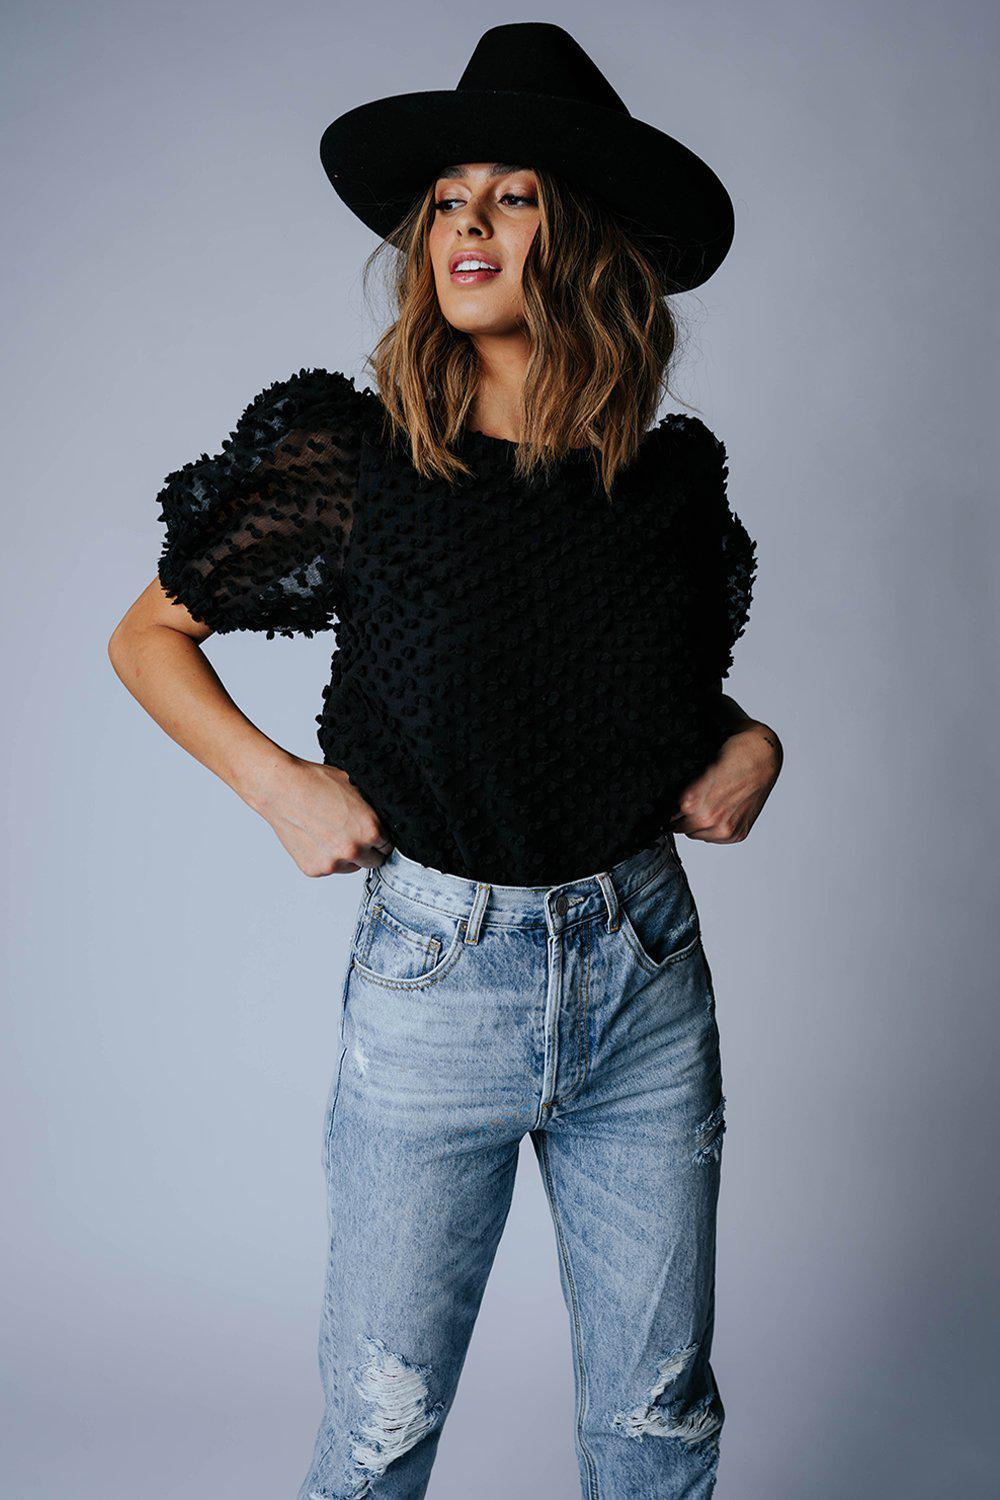 best_seller, Puff Me Up Blouse, Top, women's clothing, dresses, skirts, coats, jackets, shoes, boots, tops, tee shirts, jeans, free people, levi's, rollas, jumpsuits, bottoms, tops, sweaters, pullovers, pants, shorts, sweats,.